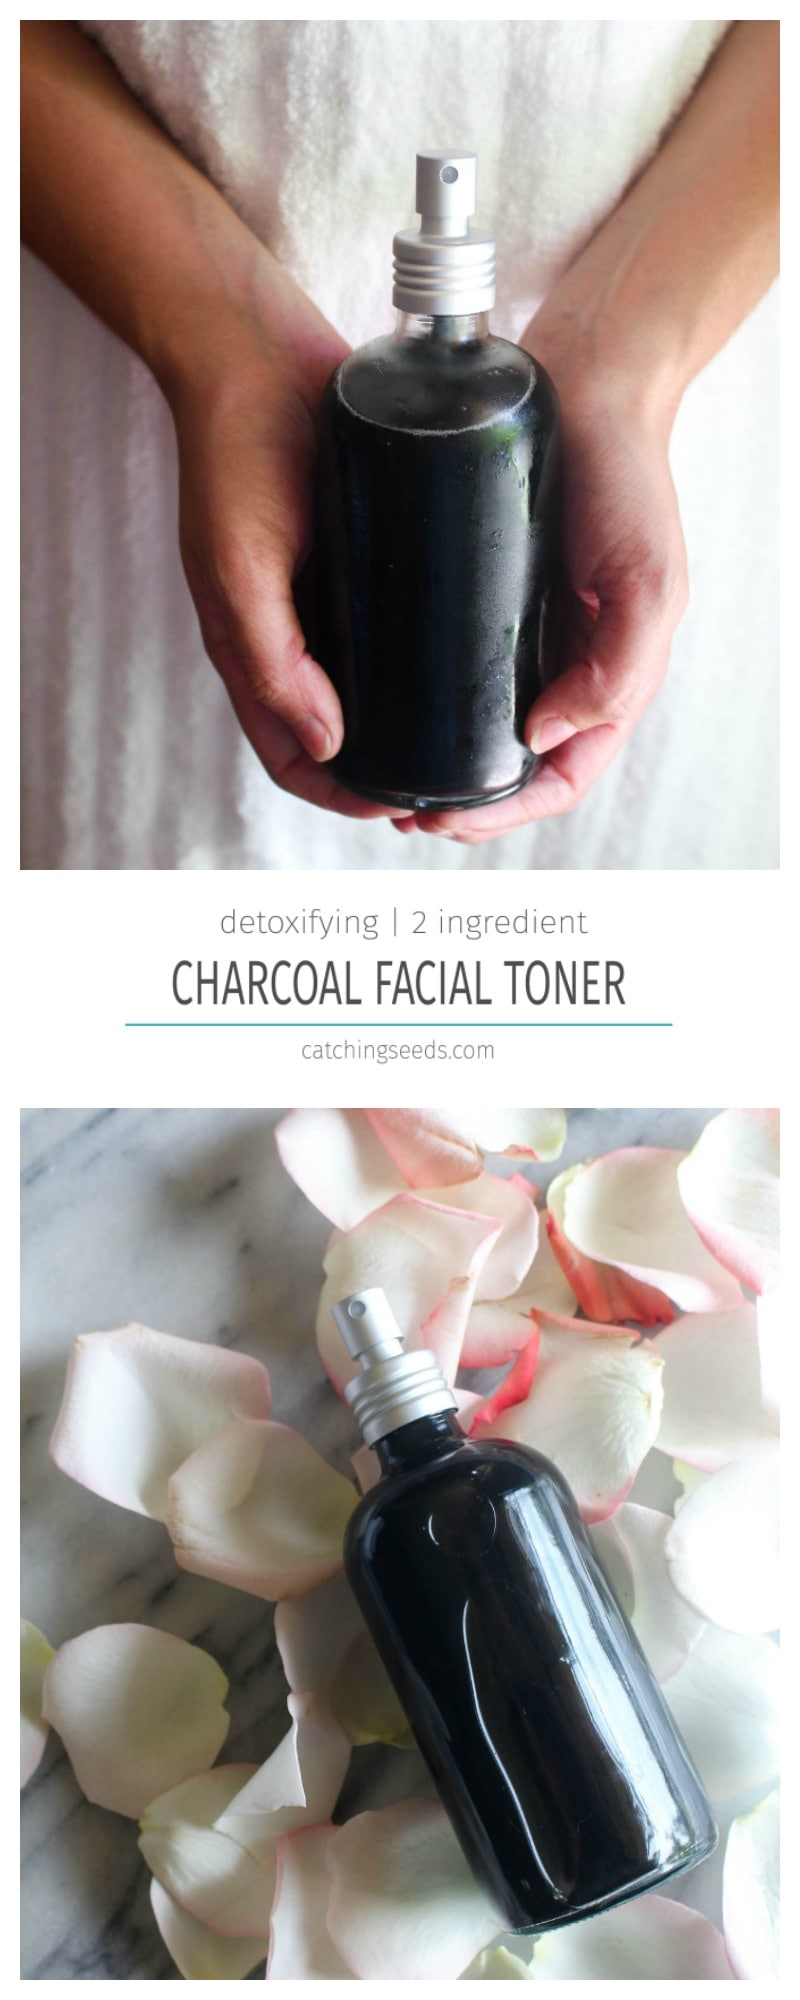 This simple 2 ingredientHomemade Charcoal Facial Toner will help to detox your skin! It benefits dry, oily, and acne prone skin types, and will leave you with a cleaner, clearer hydrated complexion. | CatchingSeeds.com